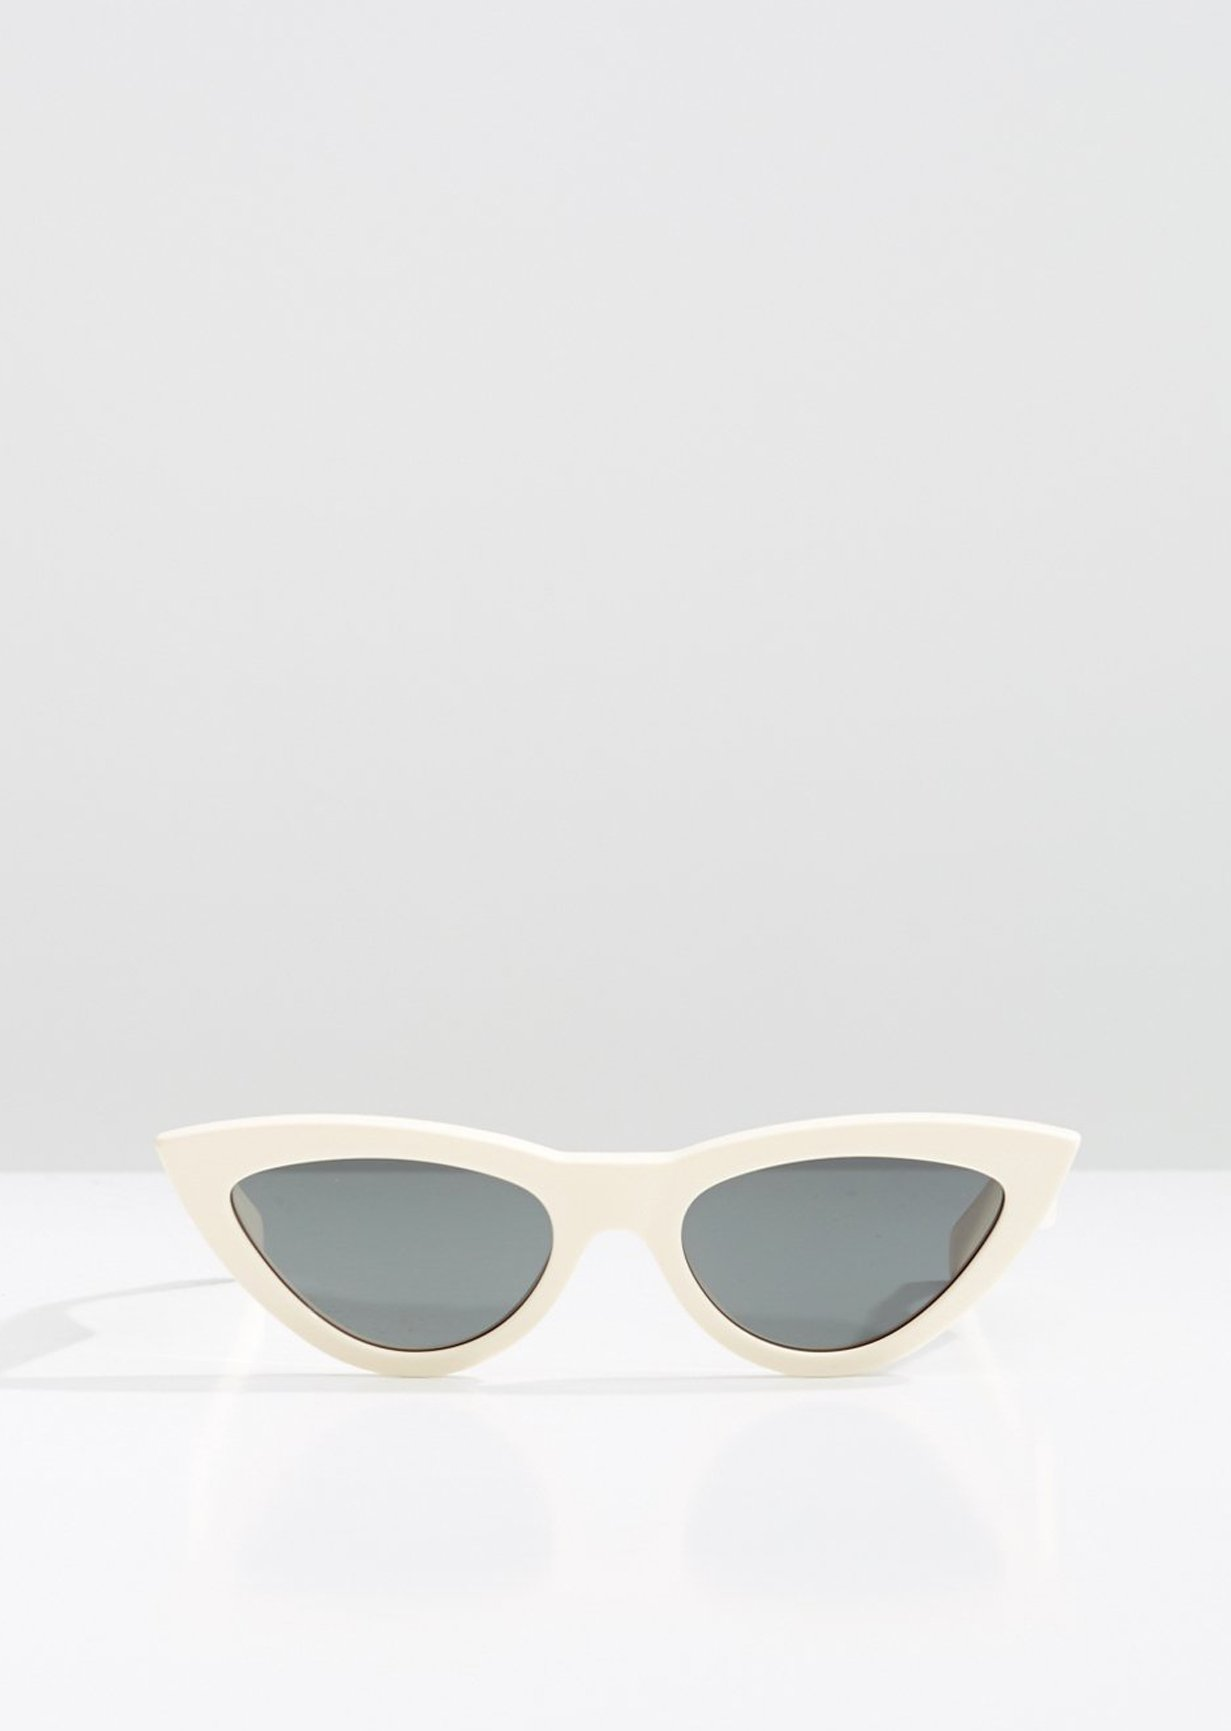 CELINE - CL40019I Sunglasses  £290 (Sold Out)  COLOUR White  CATEGORY SUN  MATERIAL Acetate  SHAPE Cat Eye